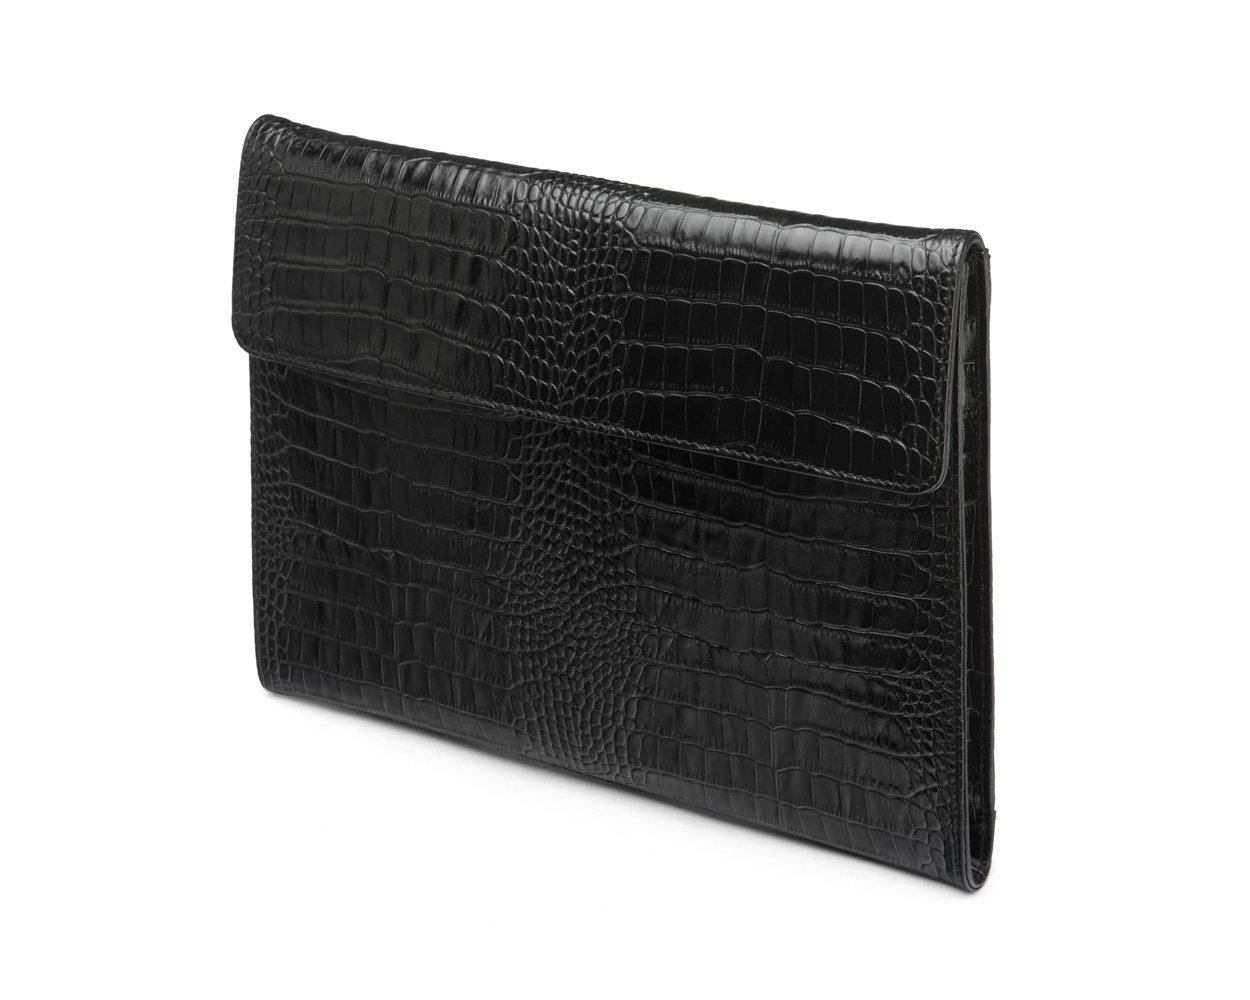 SAGEBROWN Black Croc Envelope Folder